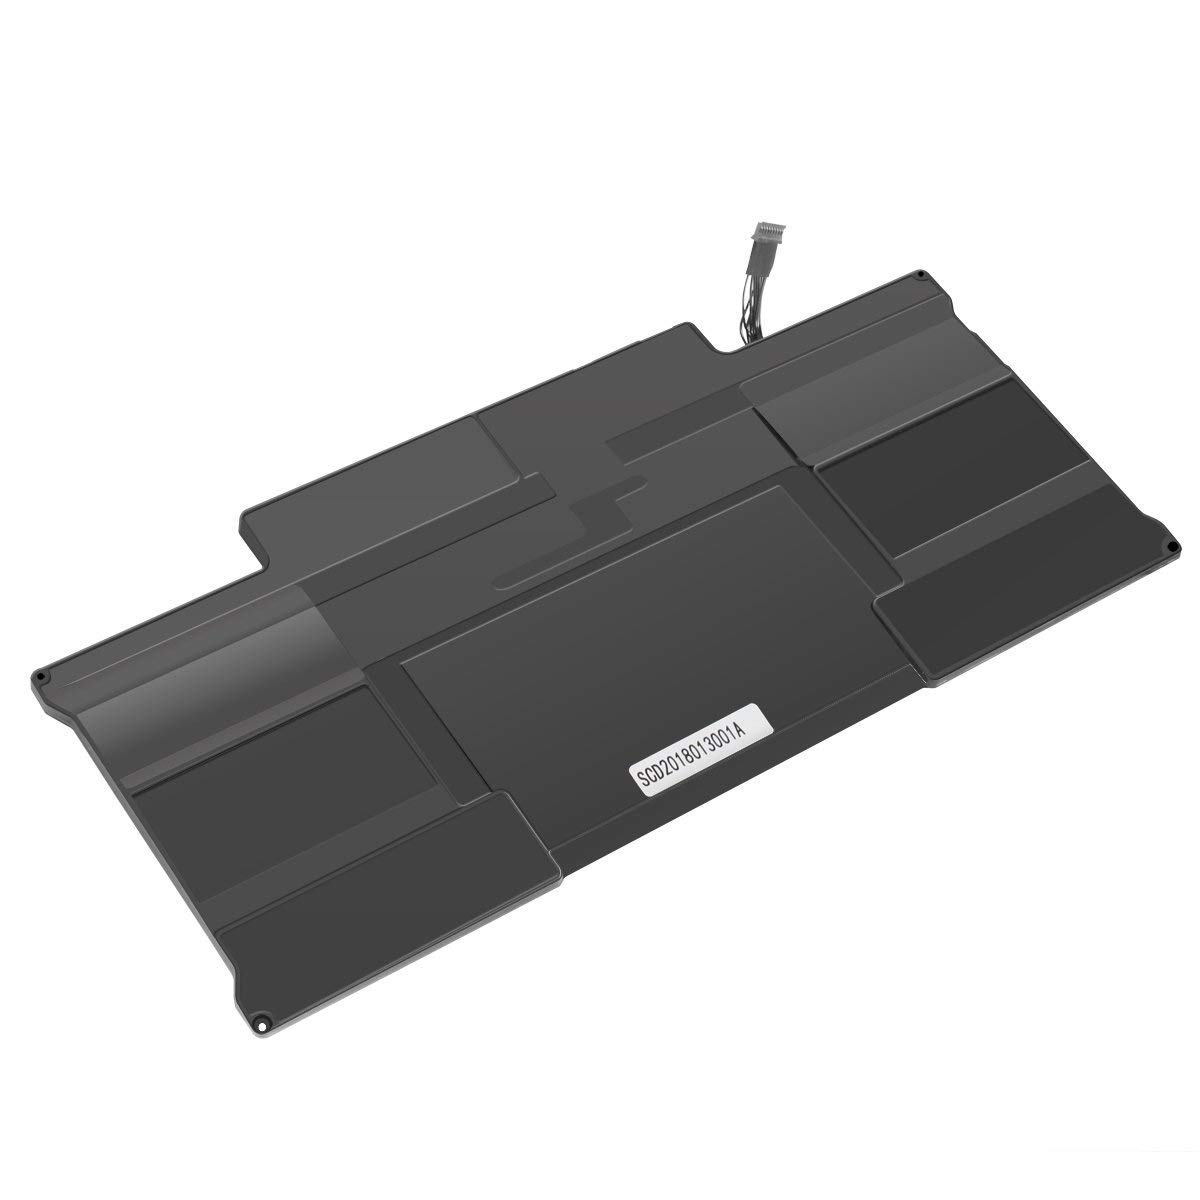 CSEXCEL New Laptop Battery for MacBook Air 13'' A1405 A1377 A1496 A1369 (Late 2010 Mid 2011) A1466 (Mid 2012 Mid 2013 Early 2014) [Li-Polymer 55Wh] by CSEXCEL (Image #3)